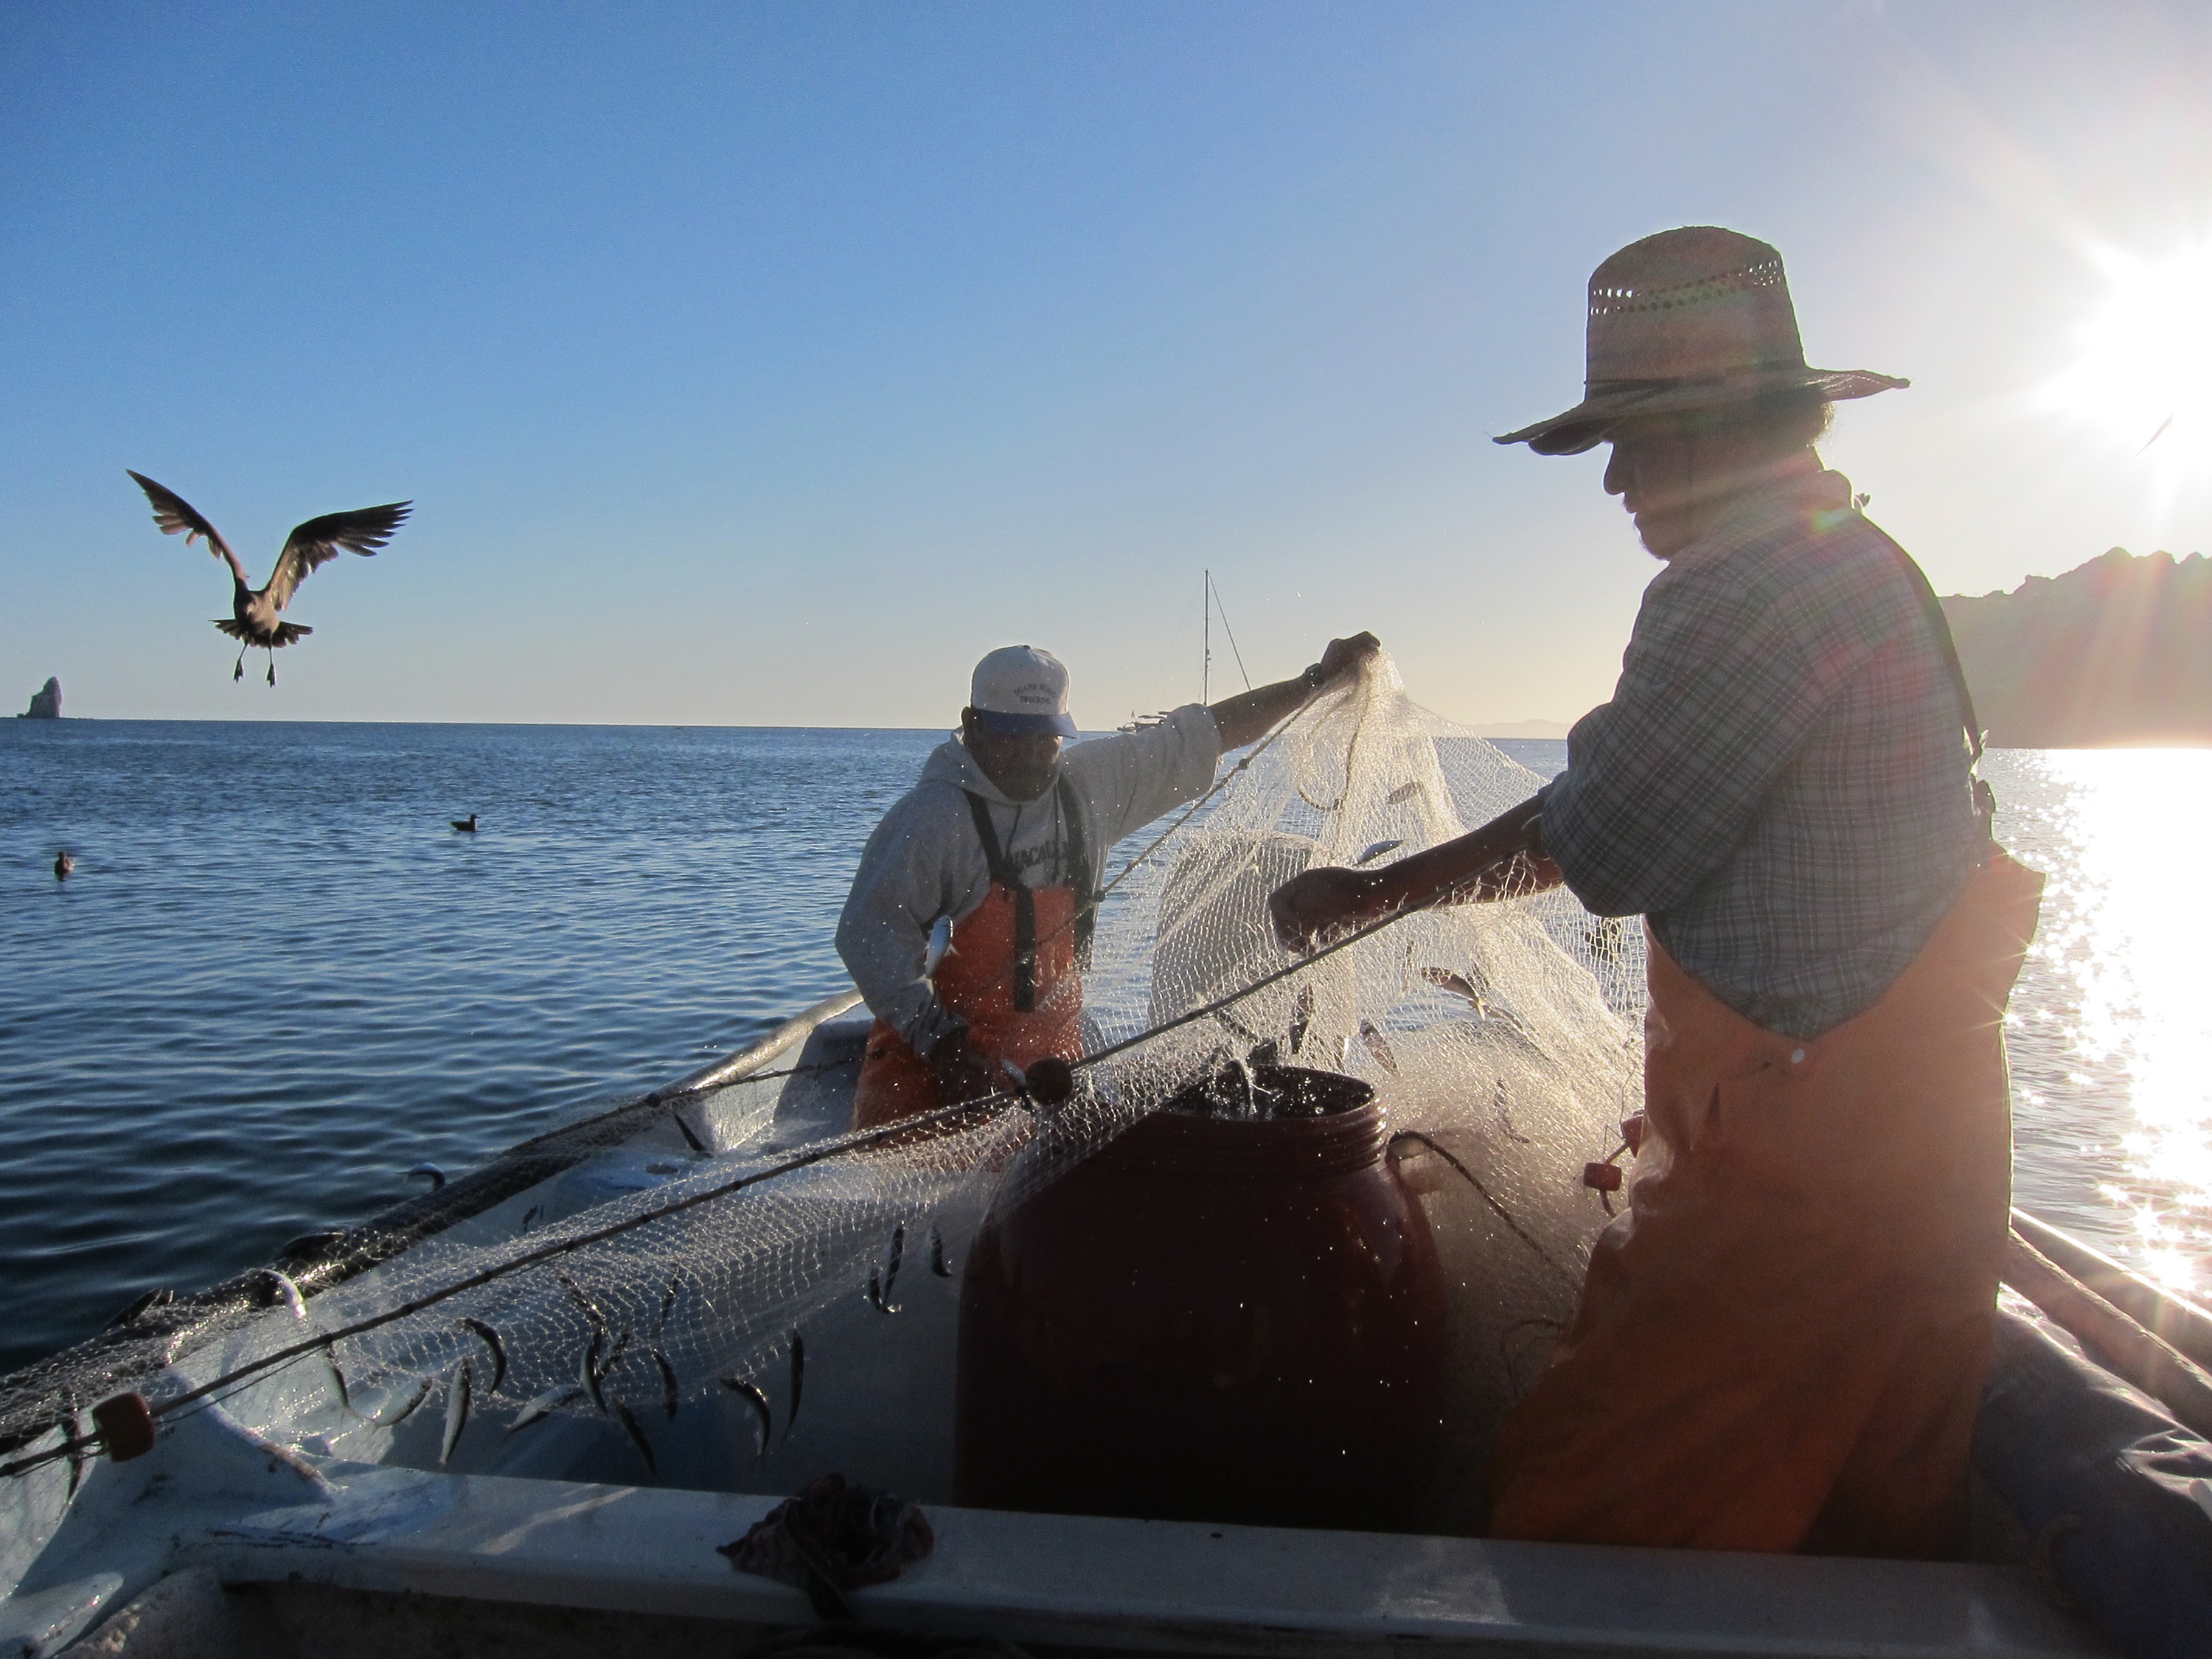 Fishers catching live bait in the Gulf of California, Mexico